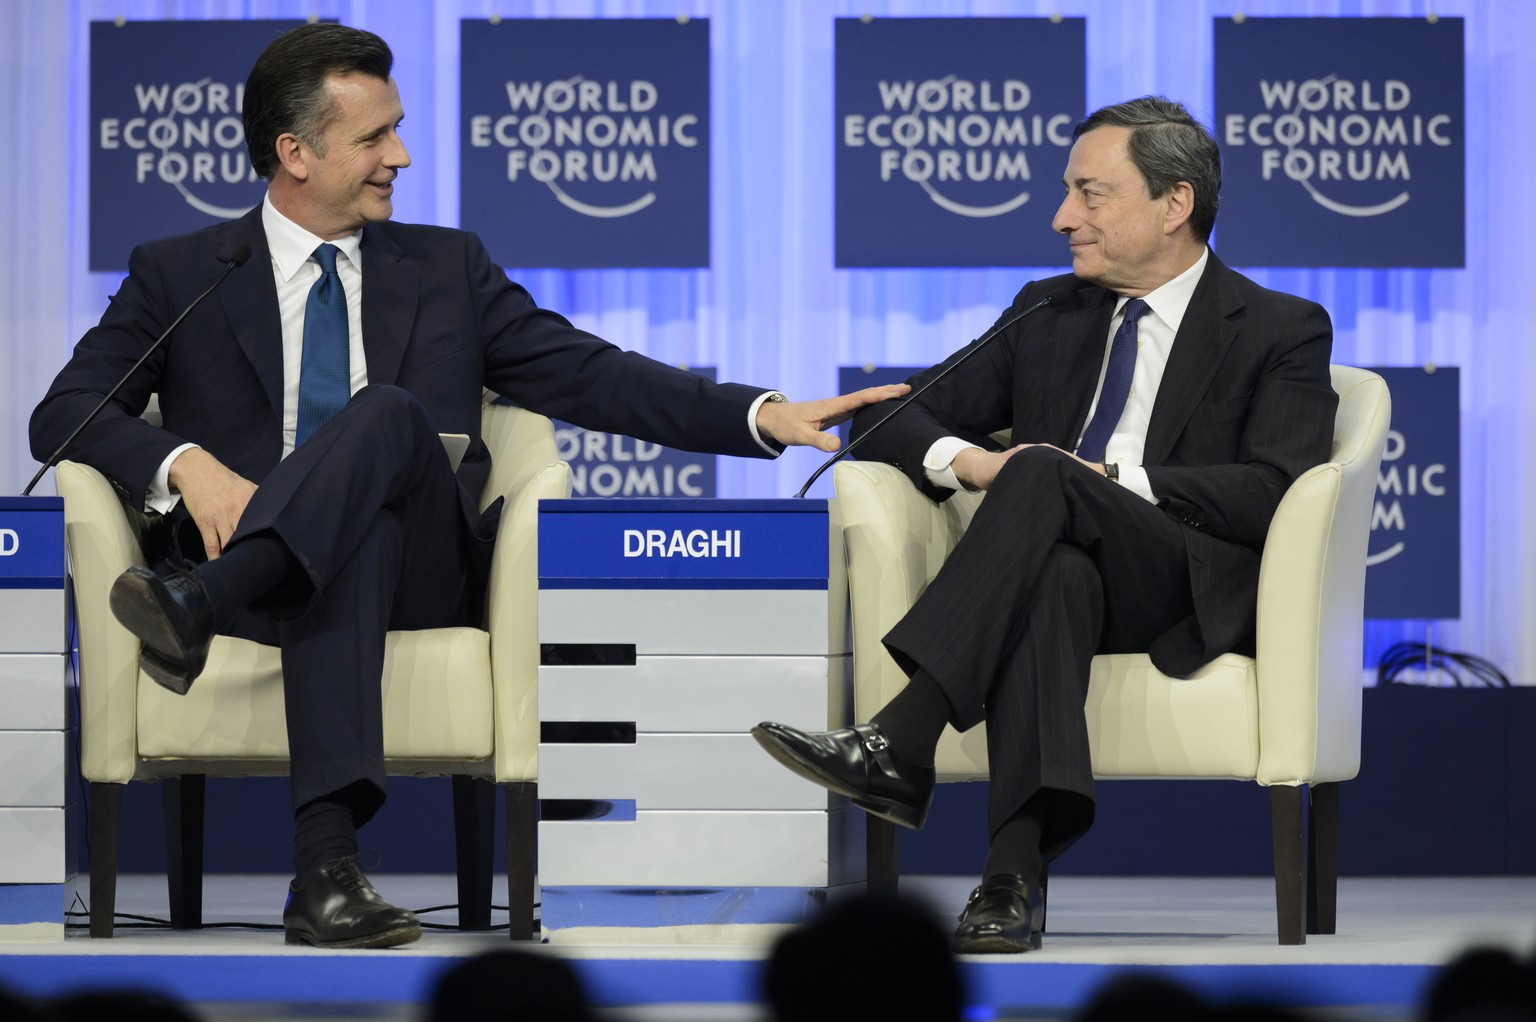 Mario Draghi, right, President of the European Central Bank, ECB, speaks with Philipp M. Hildebrand, left, vice-chairman of BlackRock and former Swiss National Bank chairman, during a panel session on the third day of the 44th Annual Meeting of the World Economic Forum, WEF, in Davos, Switzerland, Friday, January 24, 2014. The overarching theme of the Meeting, which take place from 22 to 25 January, is